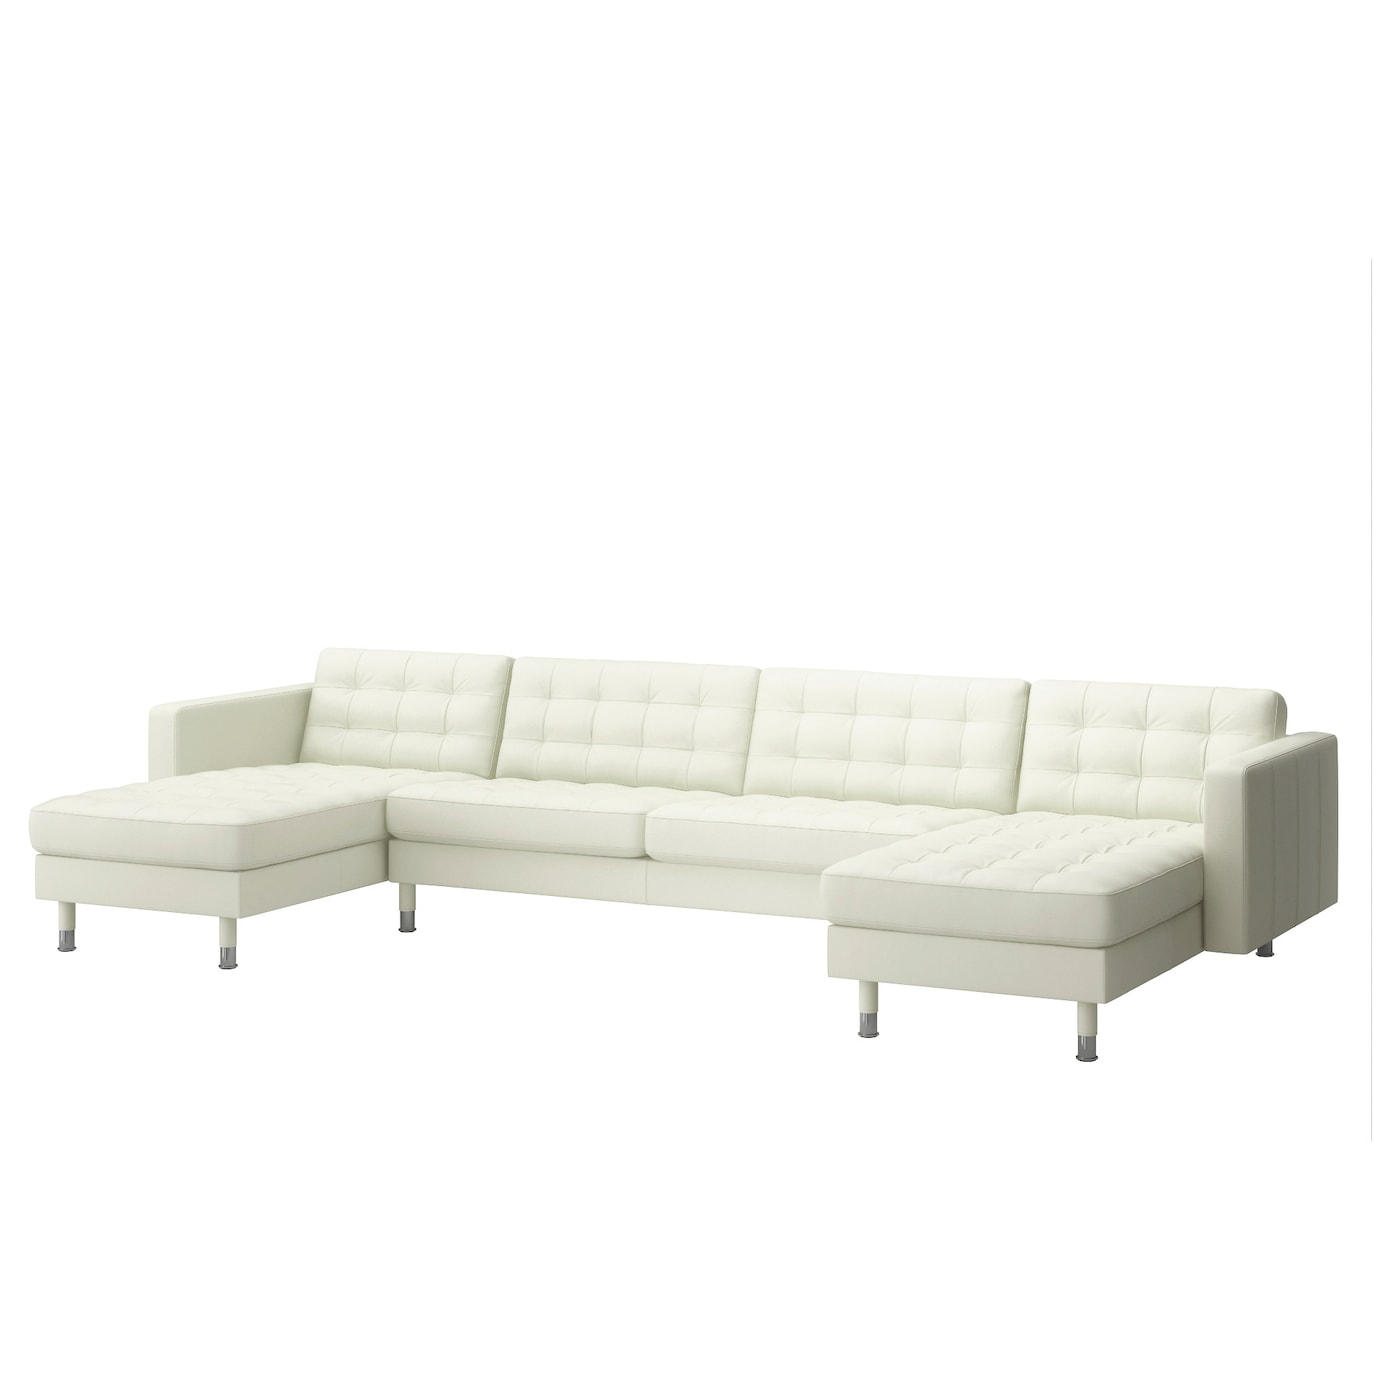 landskrona 5 seat sofa with chaise longues grann bomstad white metal ikea. Black Bedroom Furniture Sets. Home Design Ideas